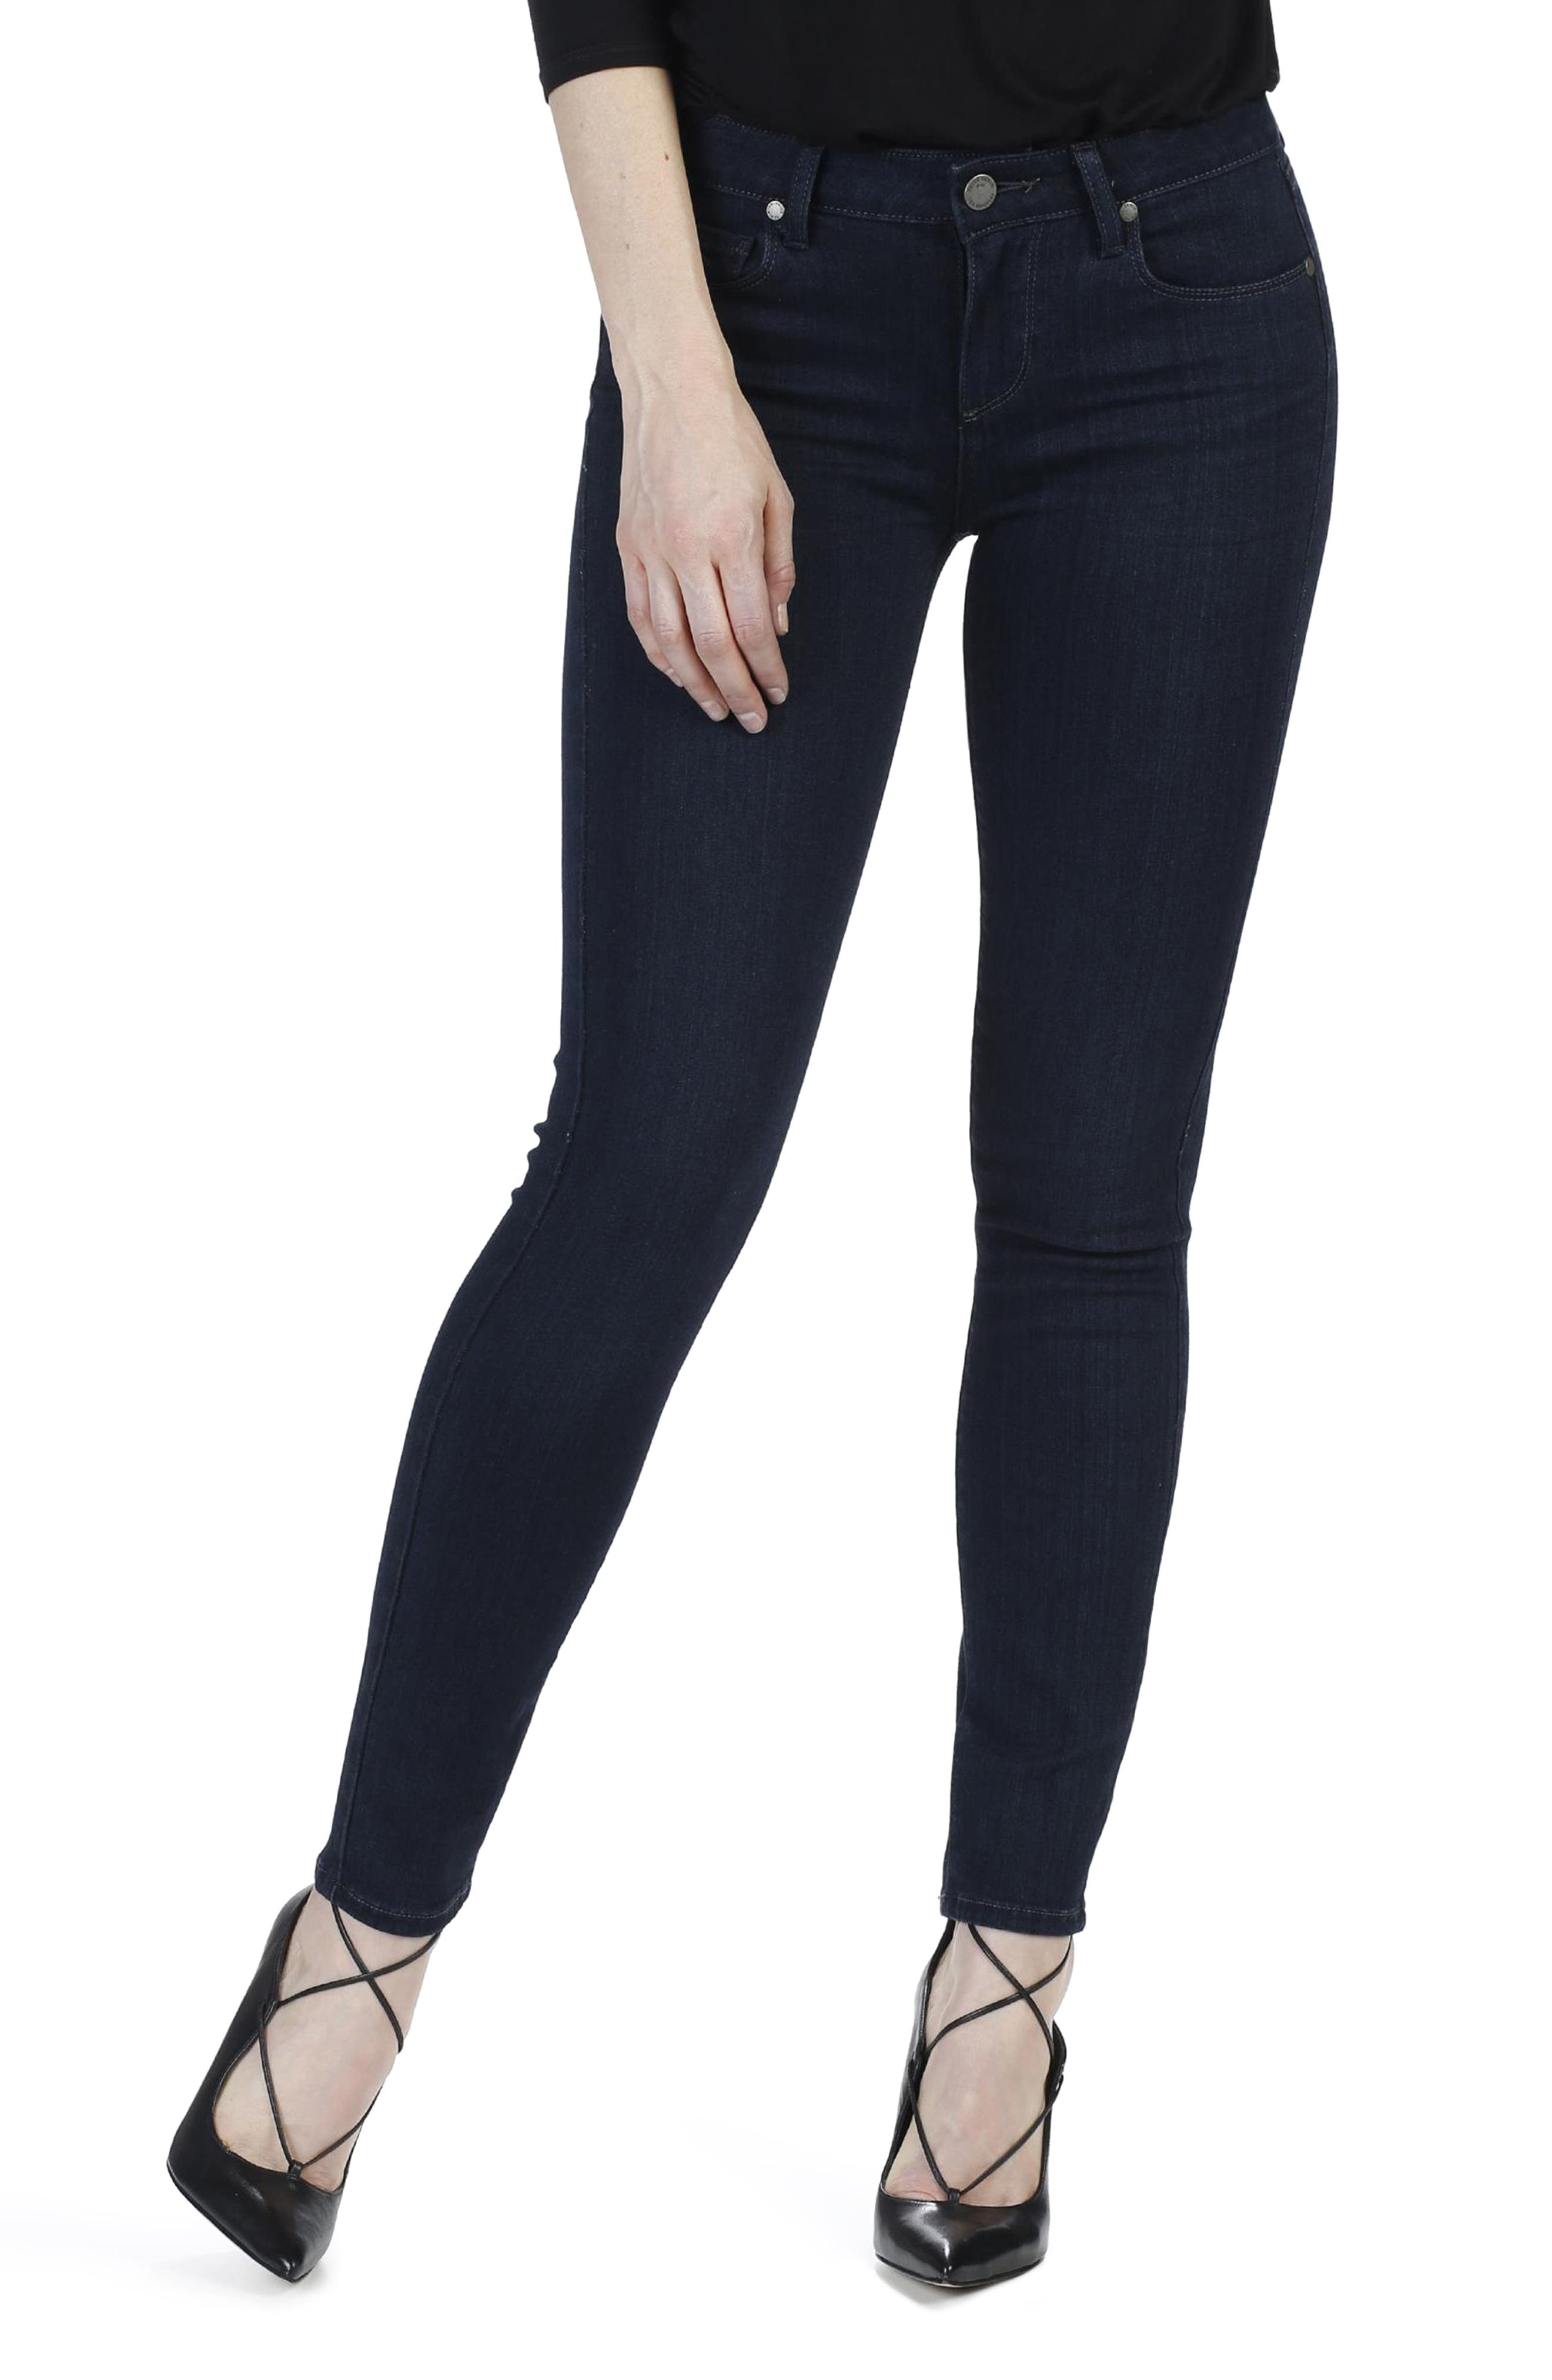 Alternate Image 1 Selected - PAIGE Transcend - Verdugo Ankle Ultra Skinny Jeans